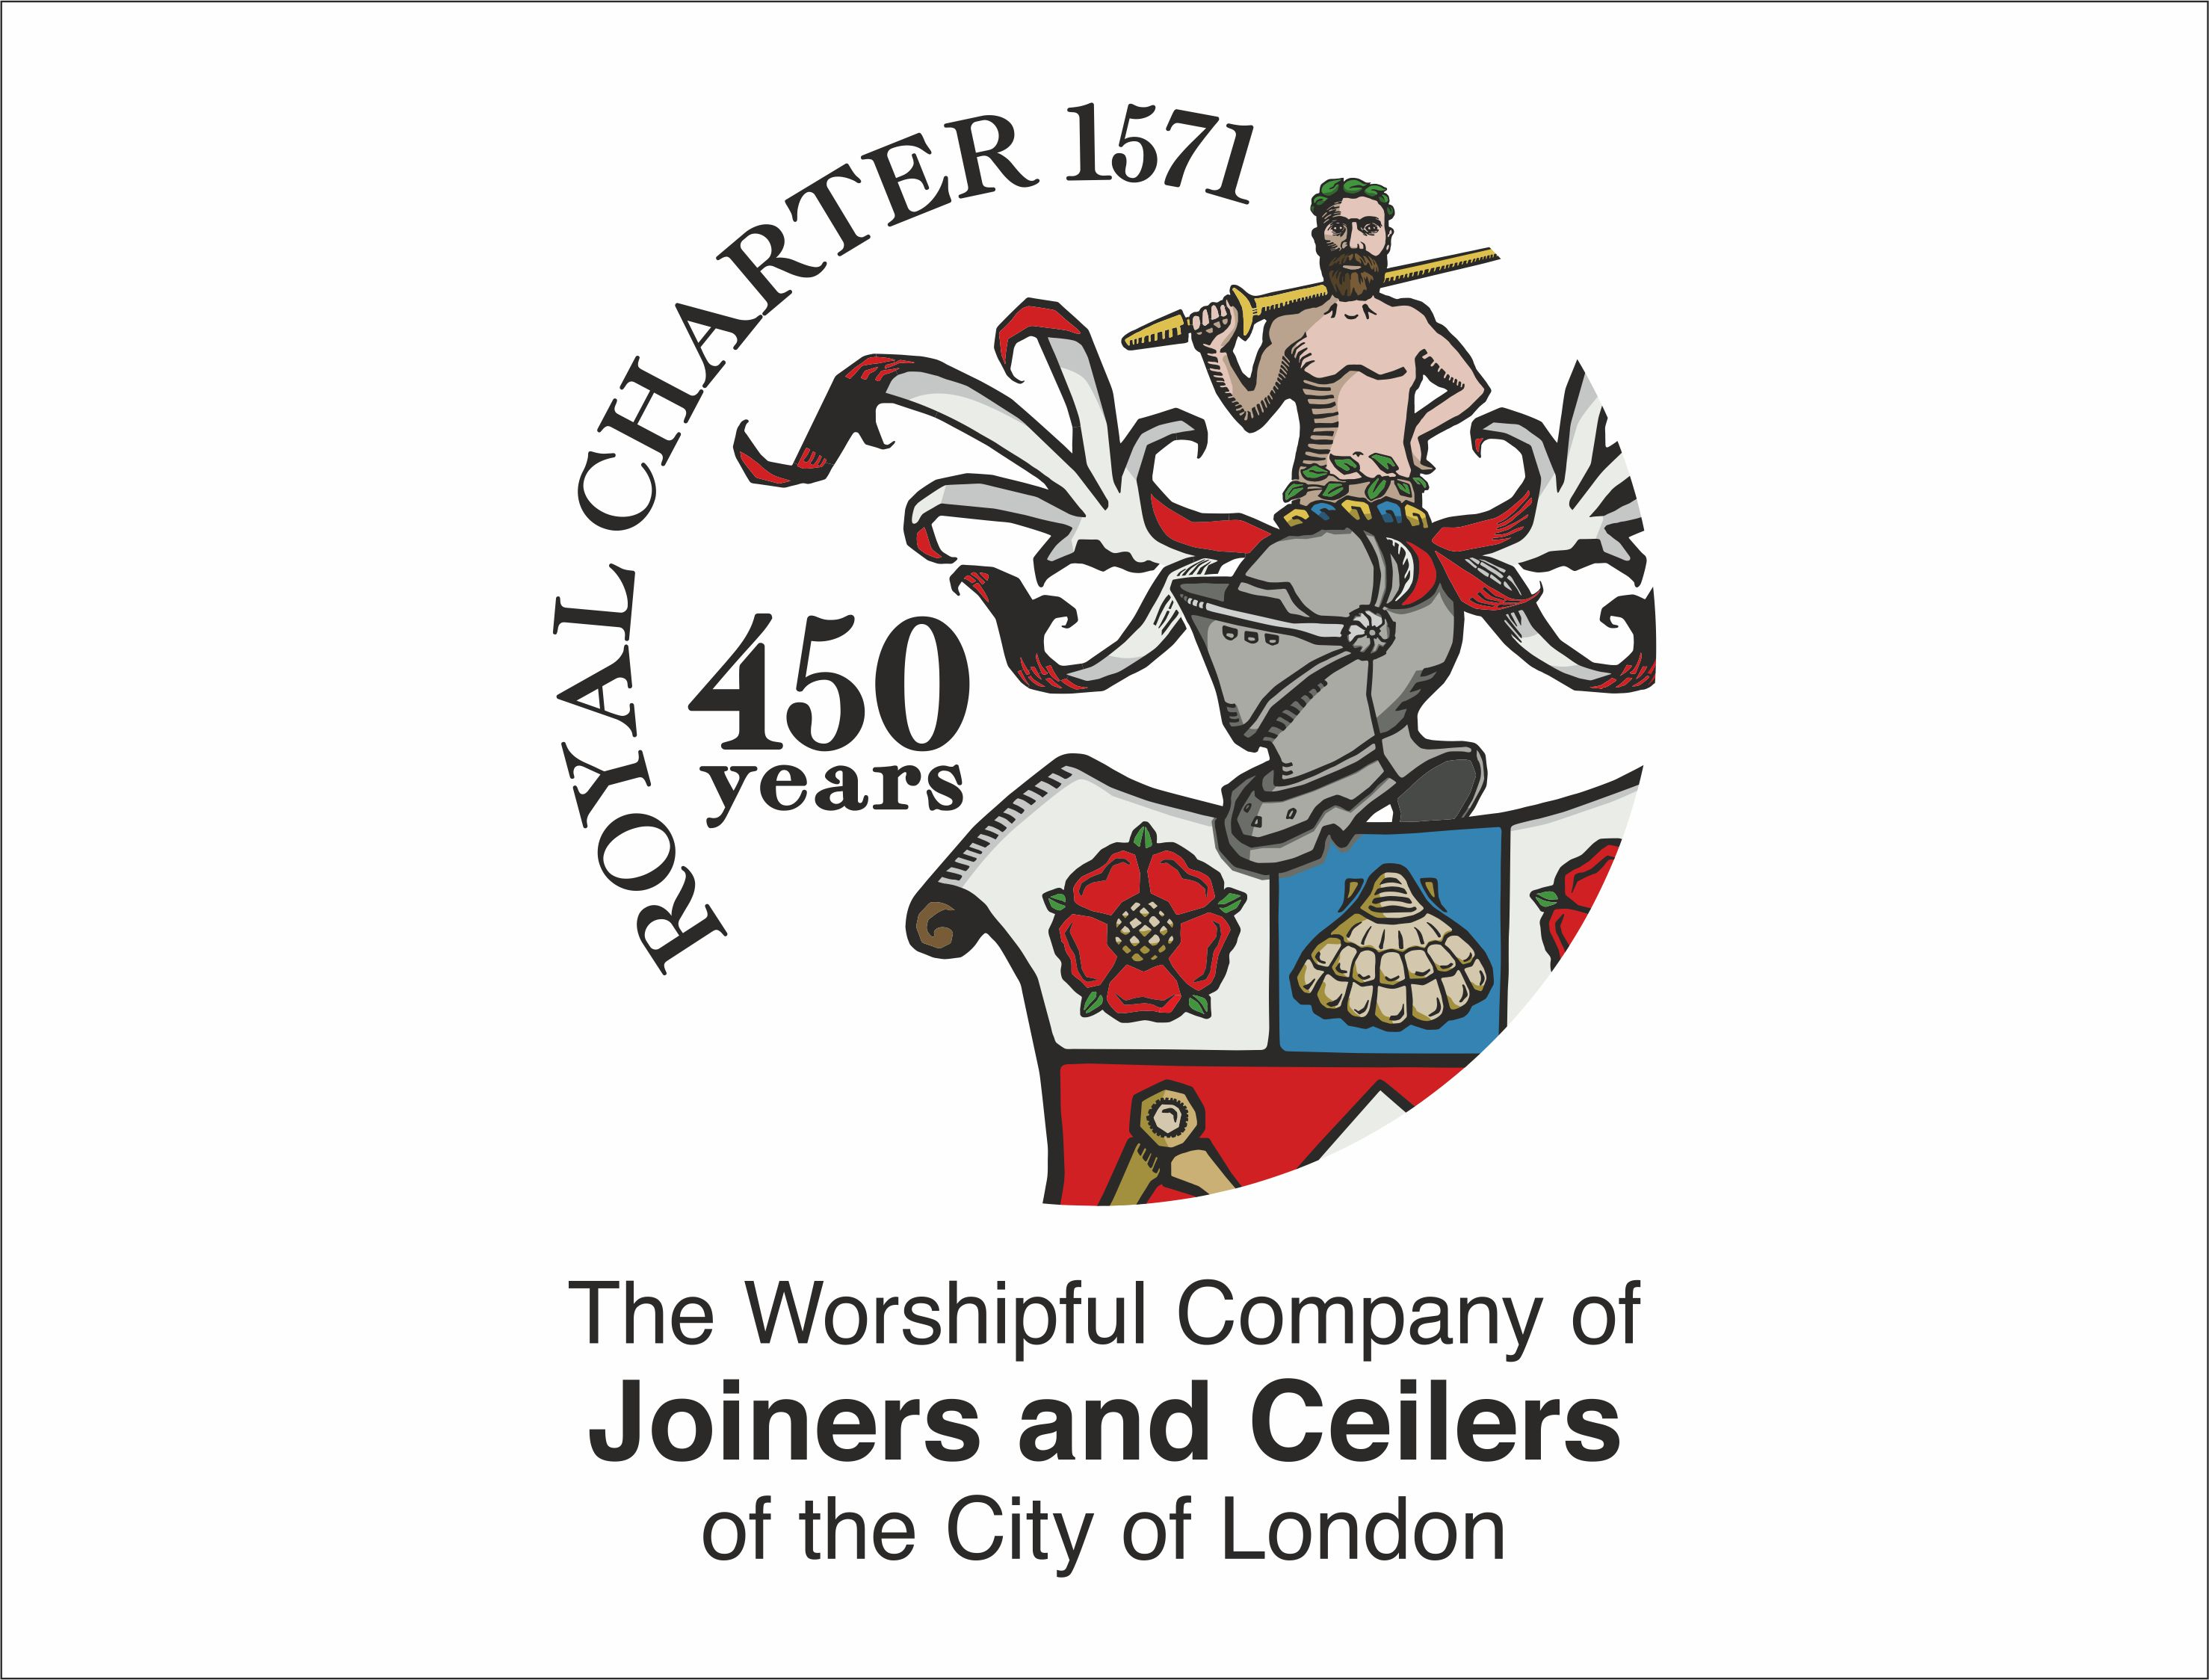 Worshipful Company of Joiners and Ceilers 80126